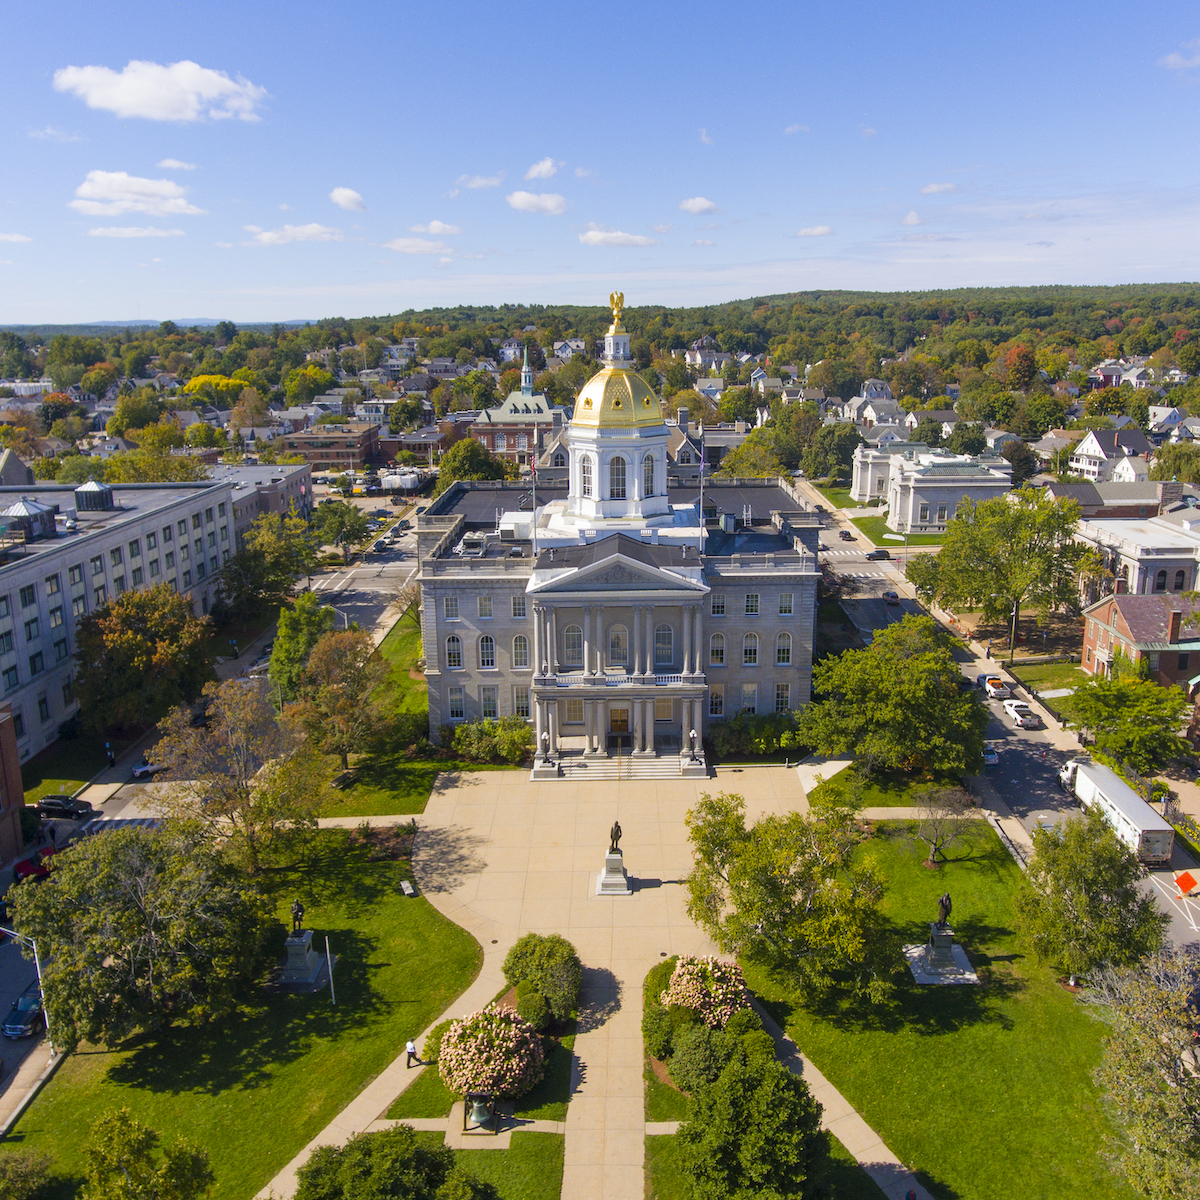 An aerial view of Concord, NH.